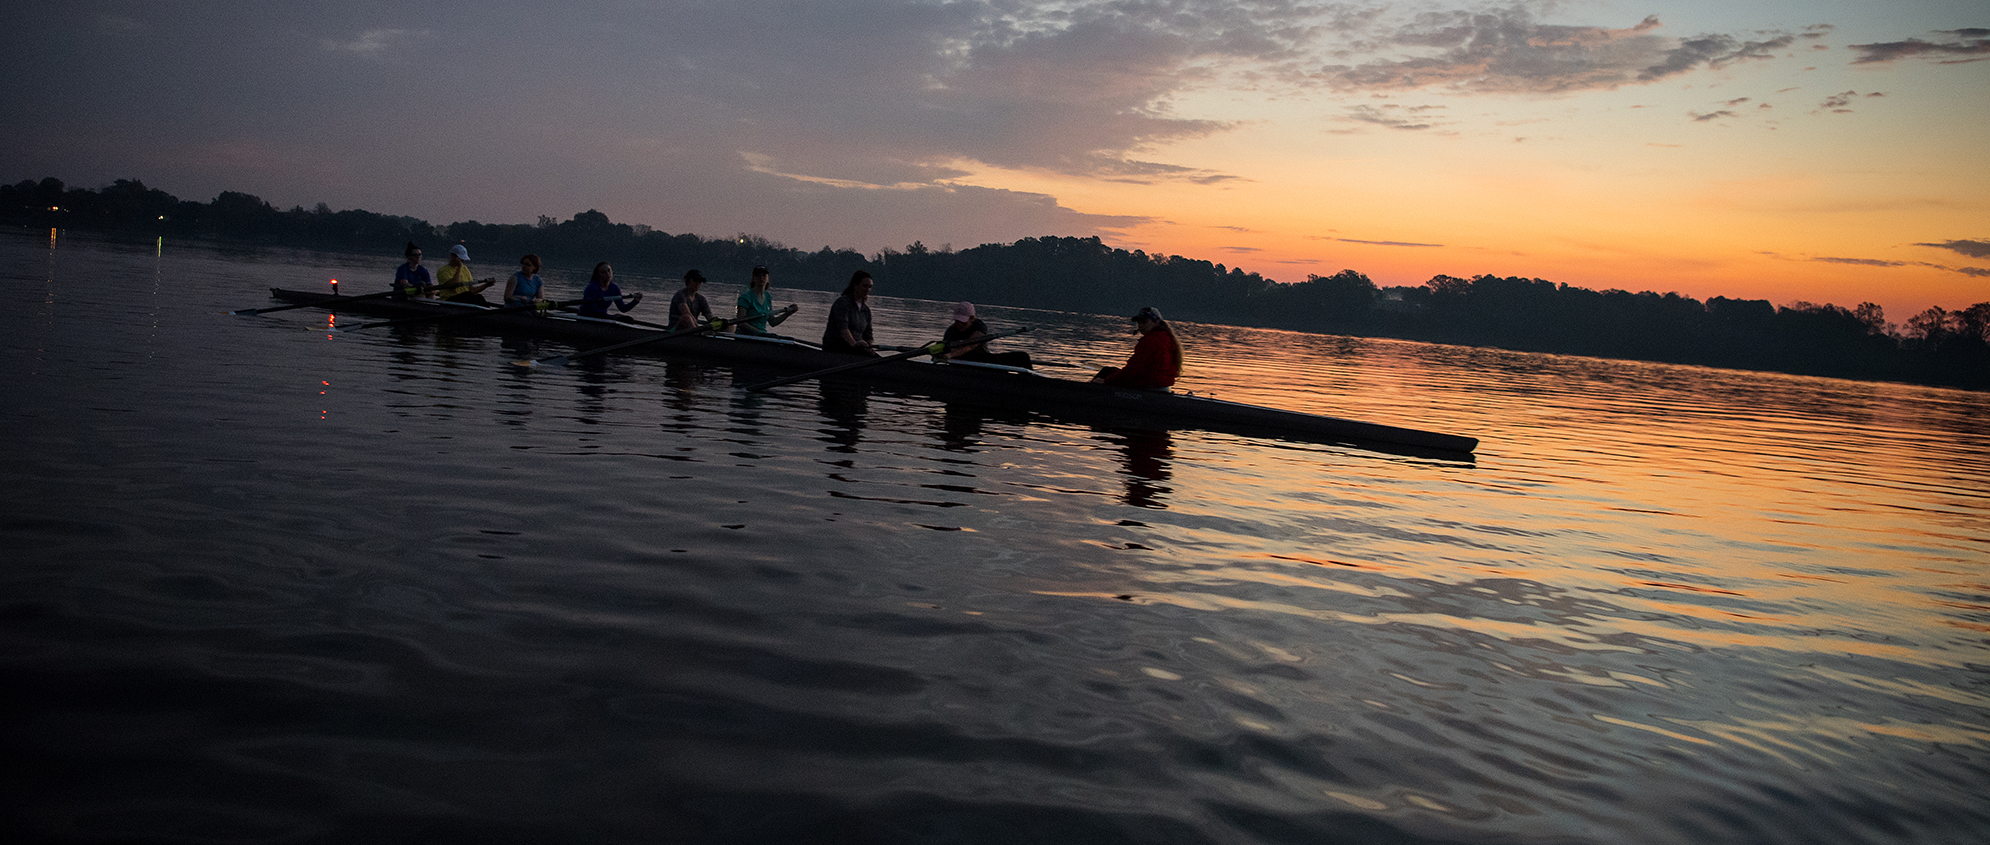 Crew Team Rowing on the St. Mary's River at Sunrise.